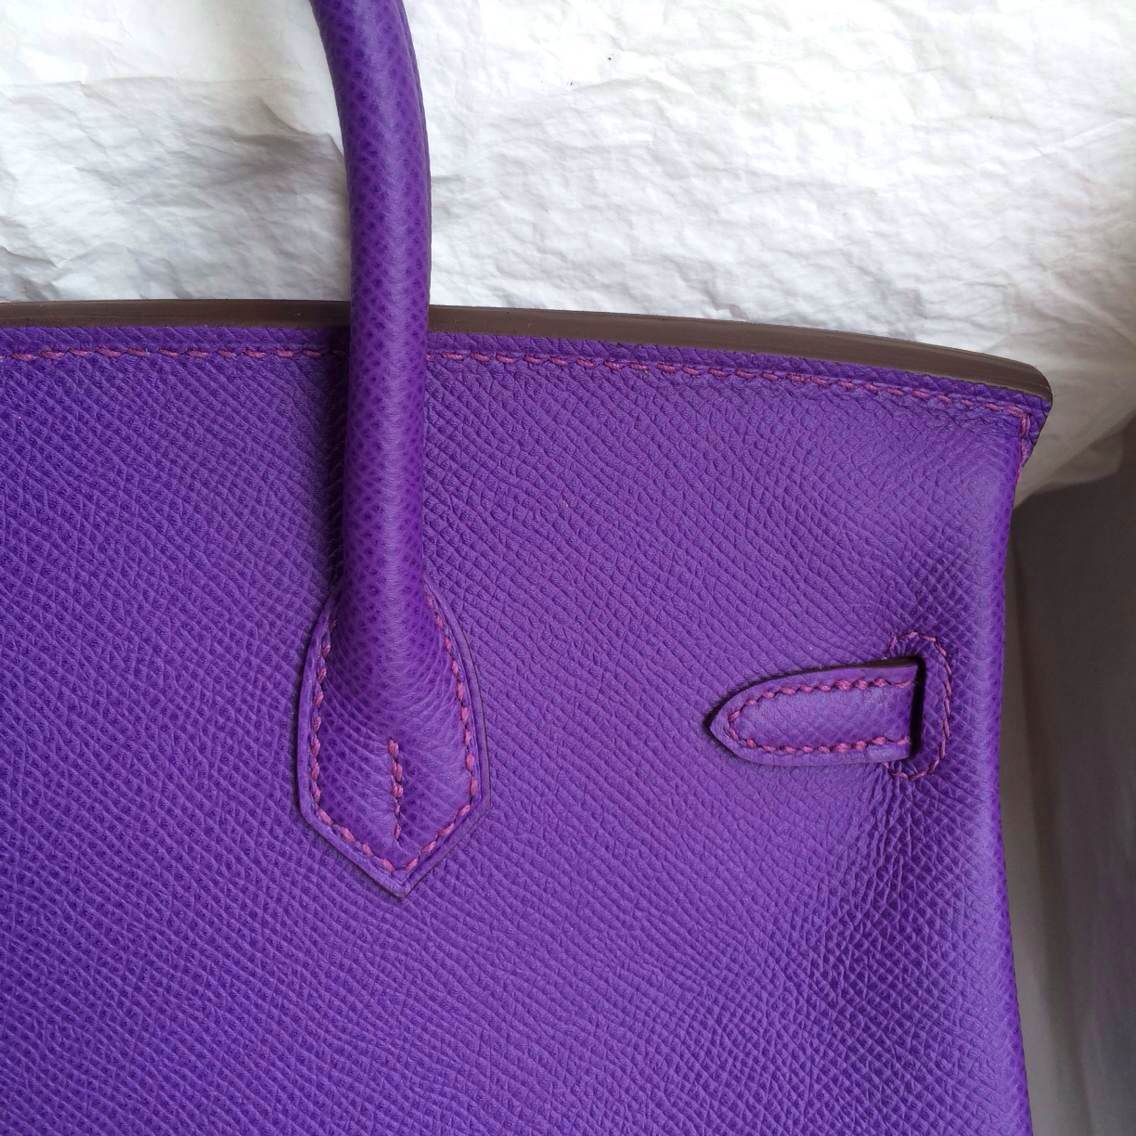 High Quality Birkin Bag 30cm 9W Violet Purple Epsom Leather Silver Hardware